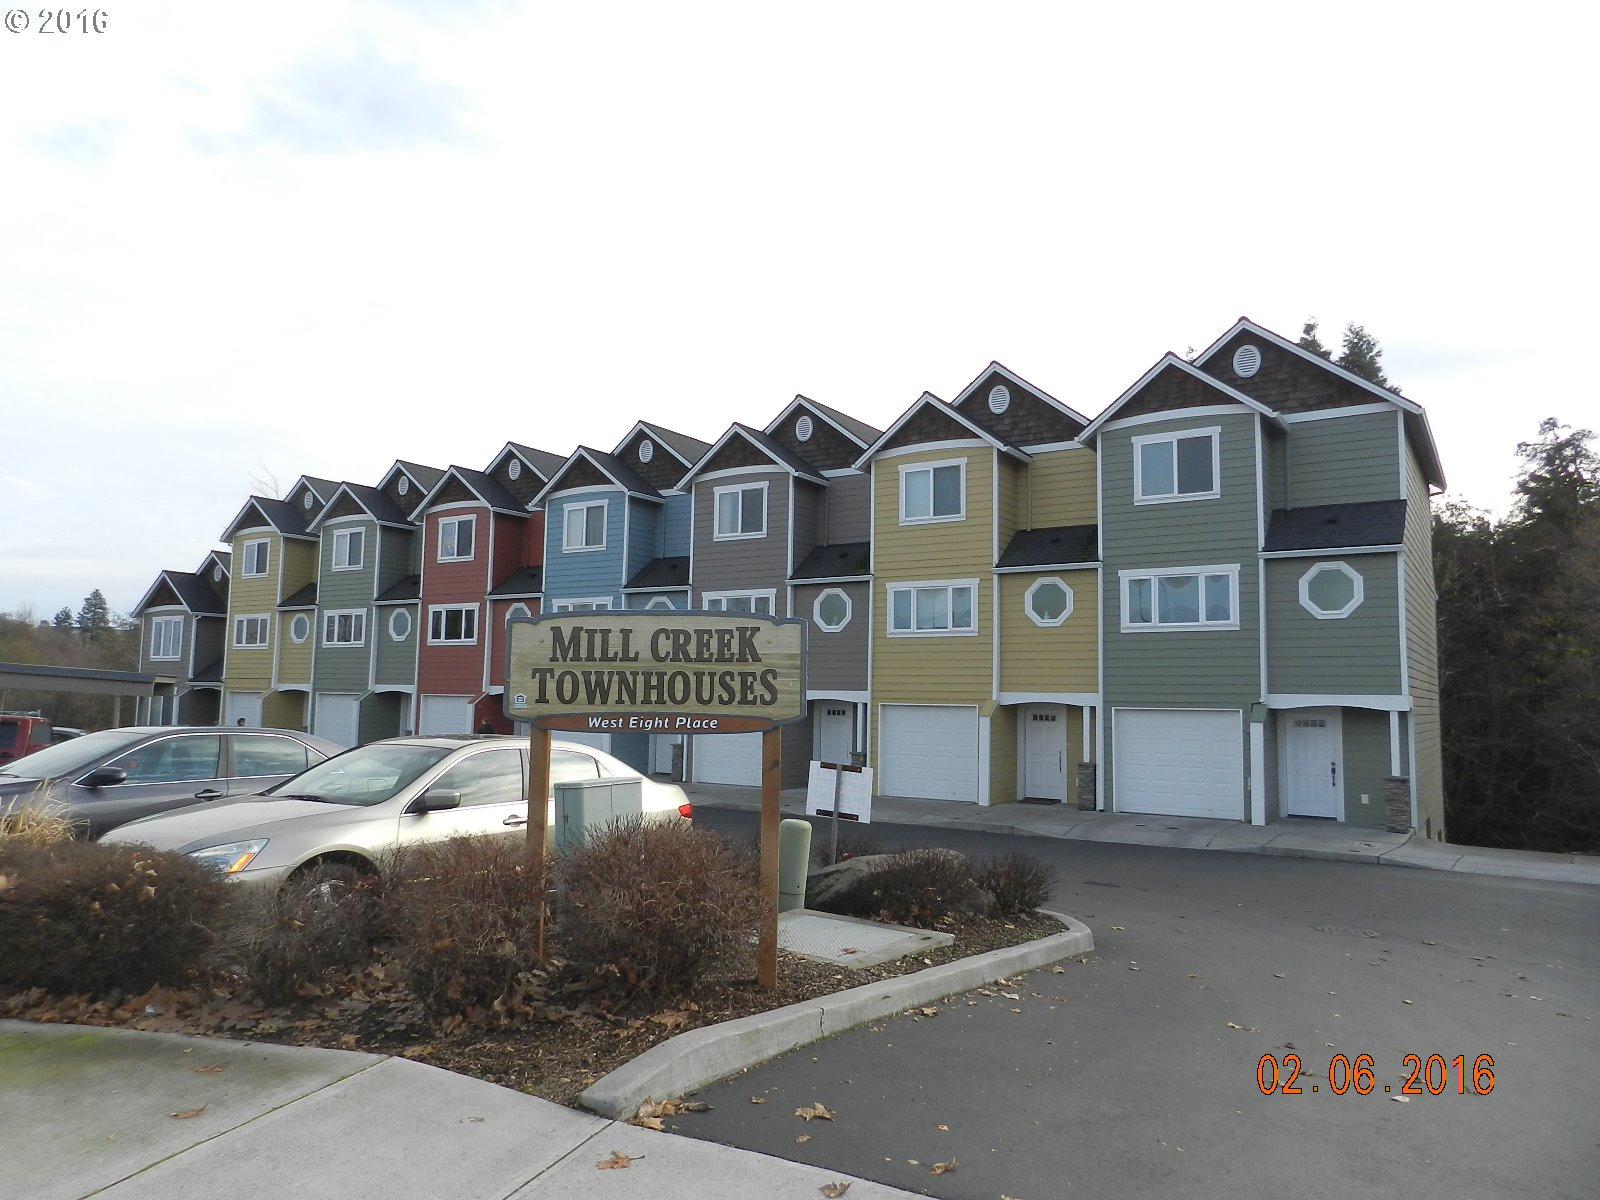 980 W 8th Pl, The Dalles, OR